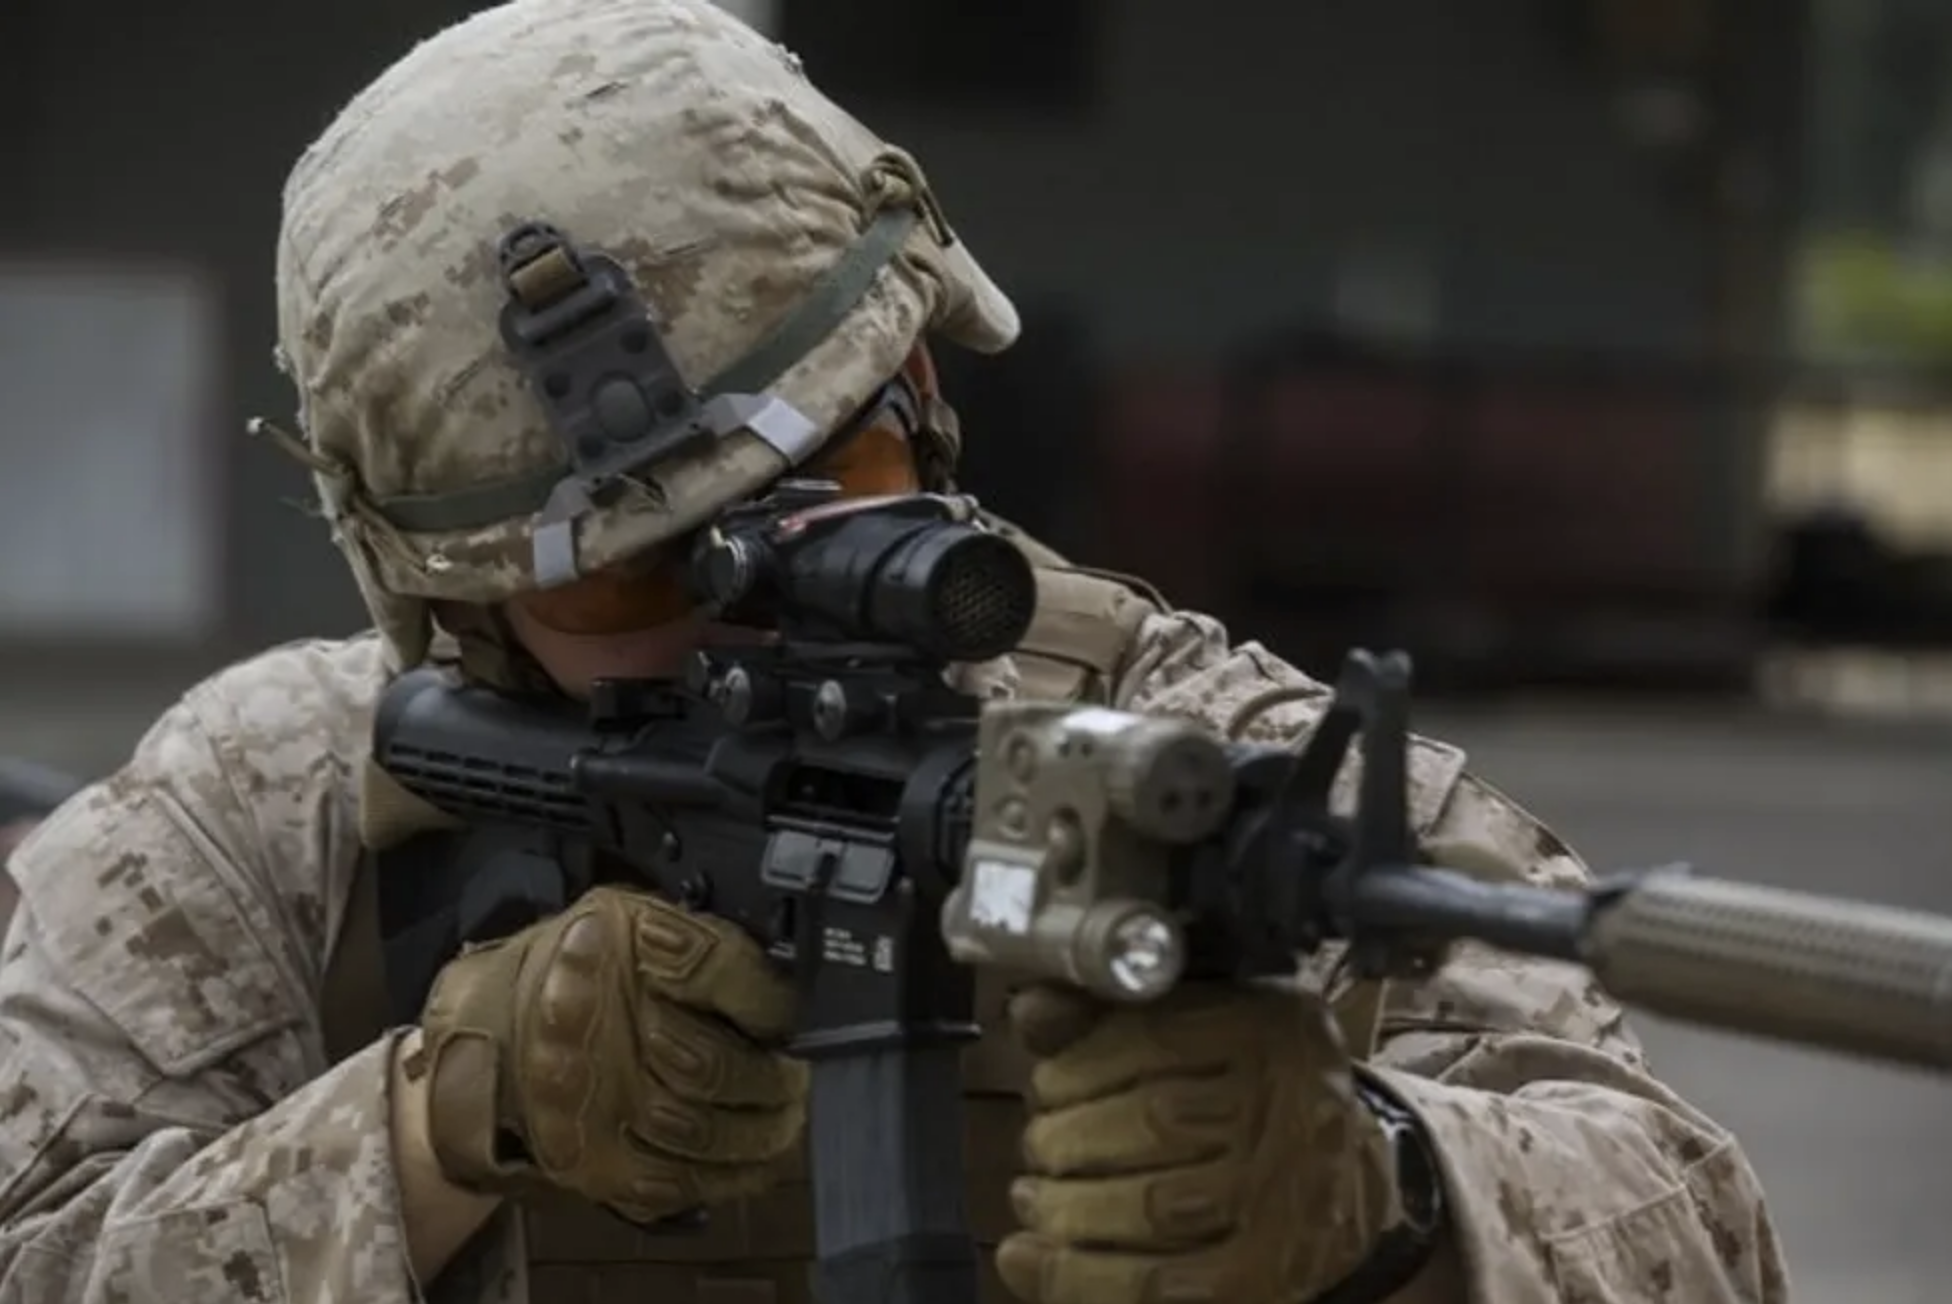 A service member aims a firearm with a suppressor.